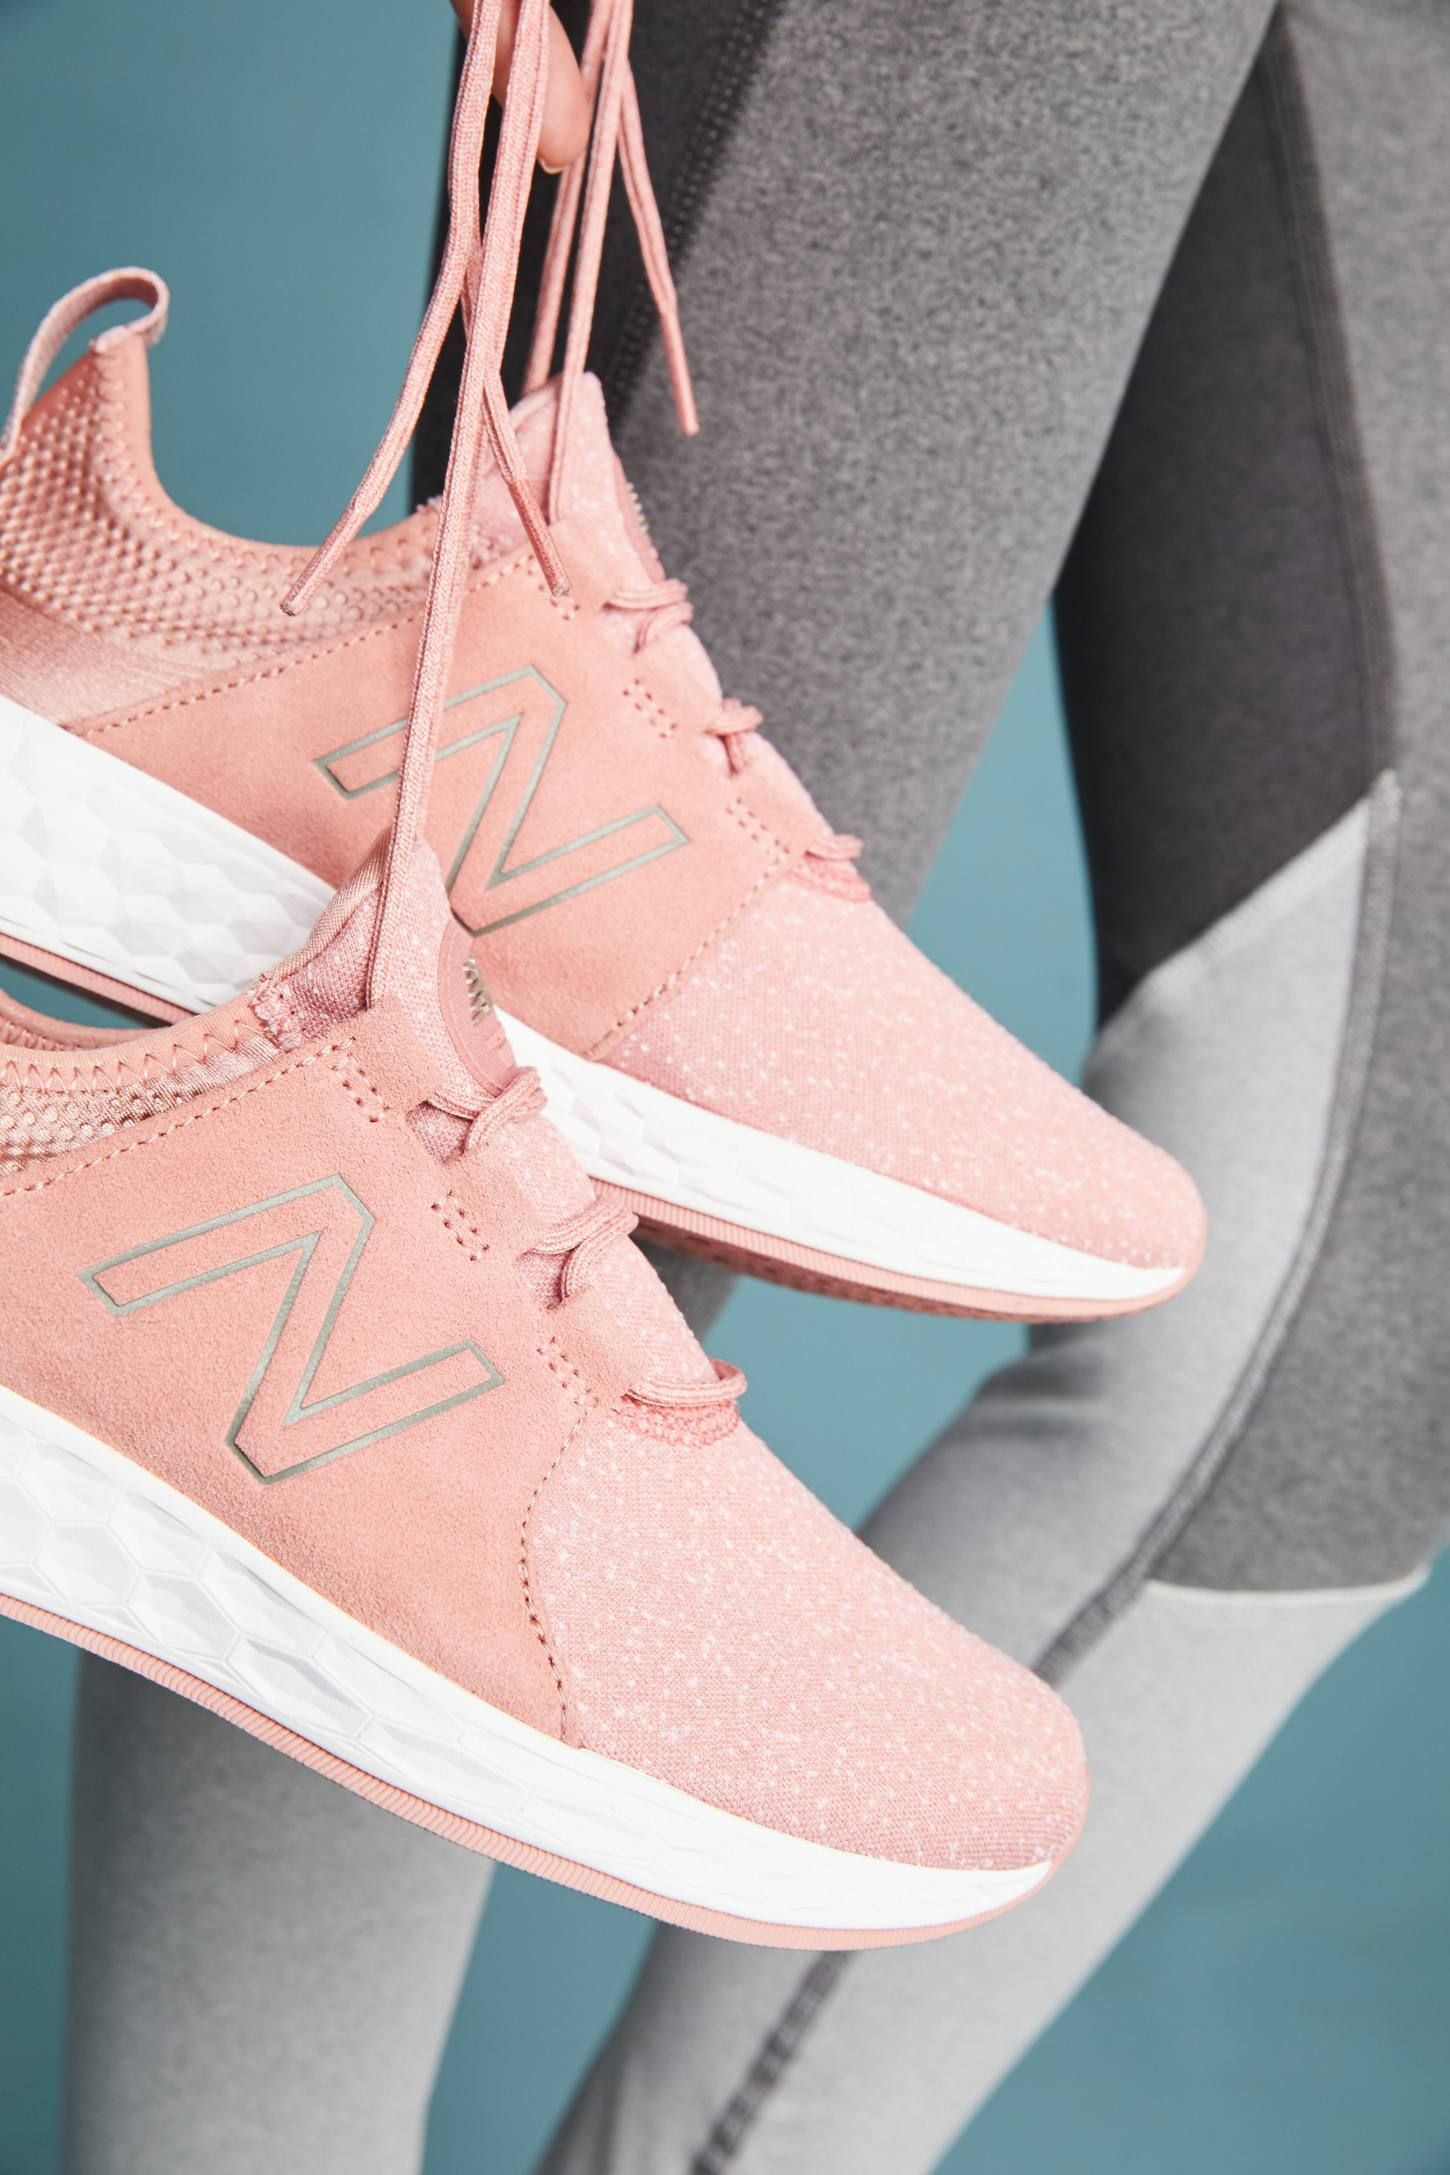 Shop the New Balance Cruz Sneakers and